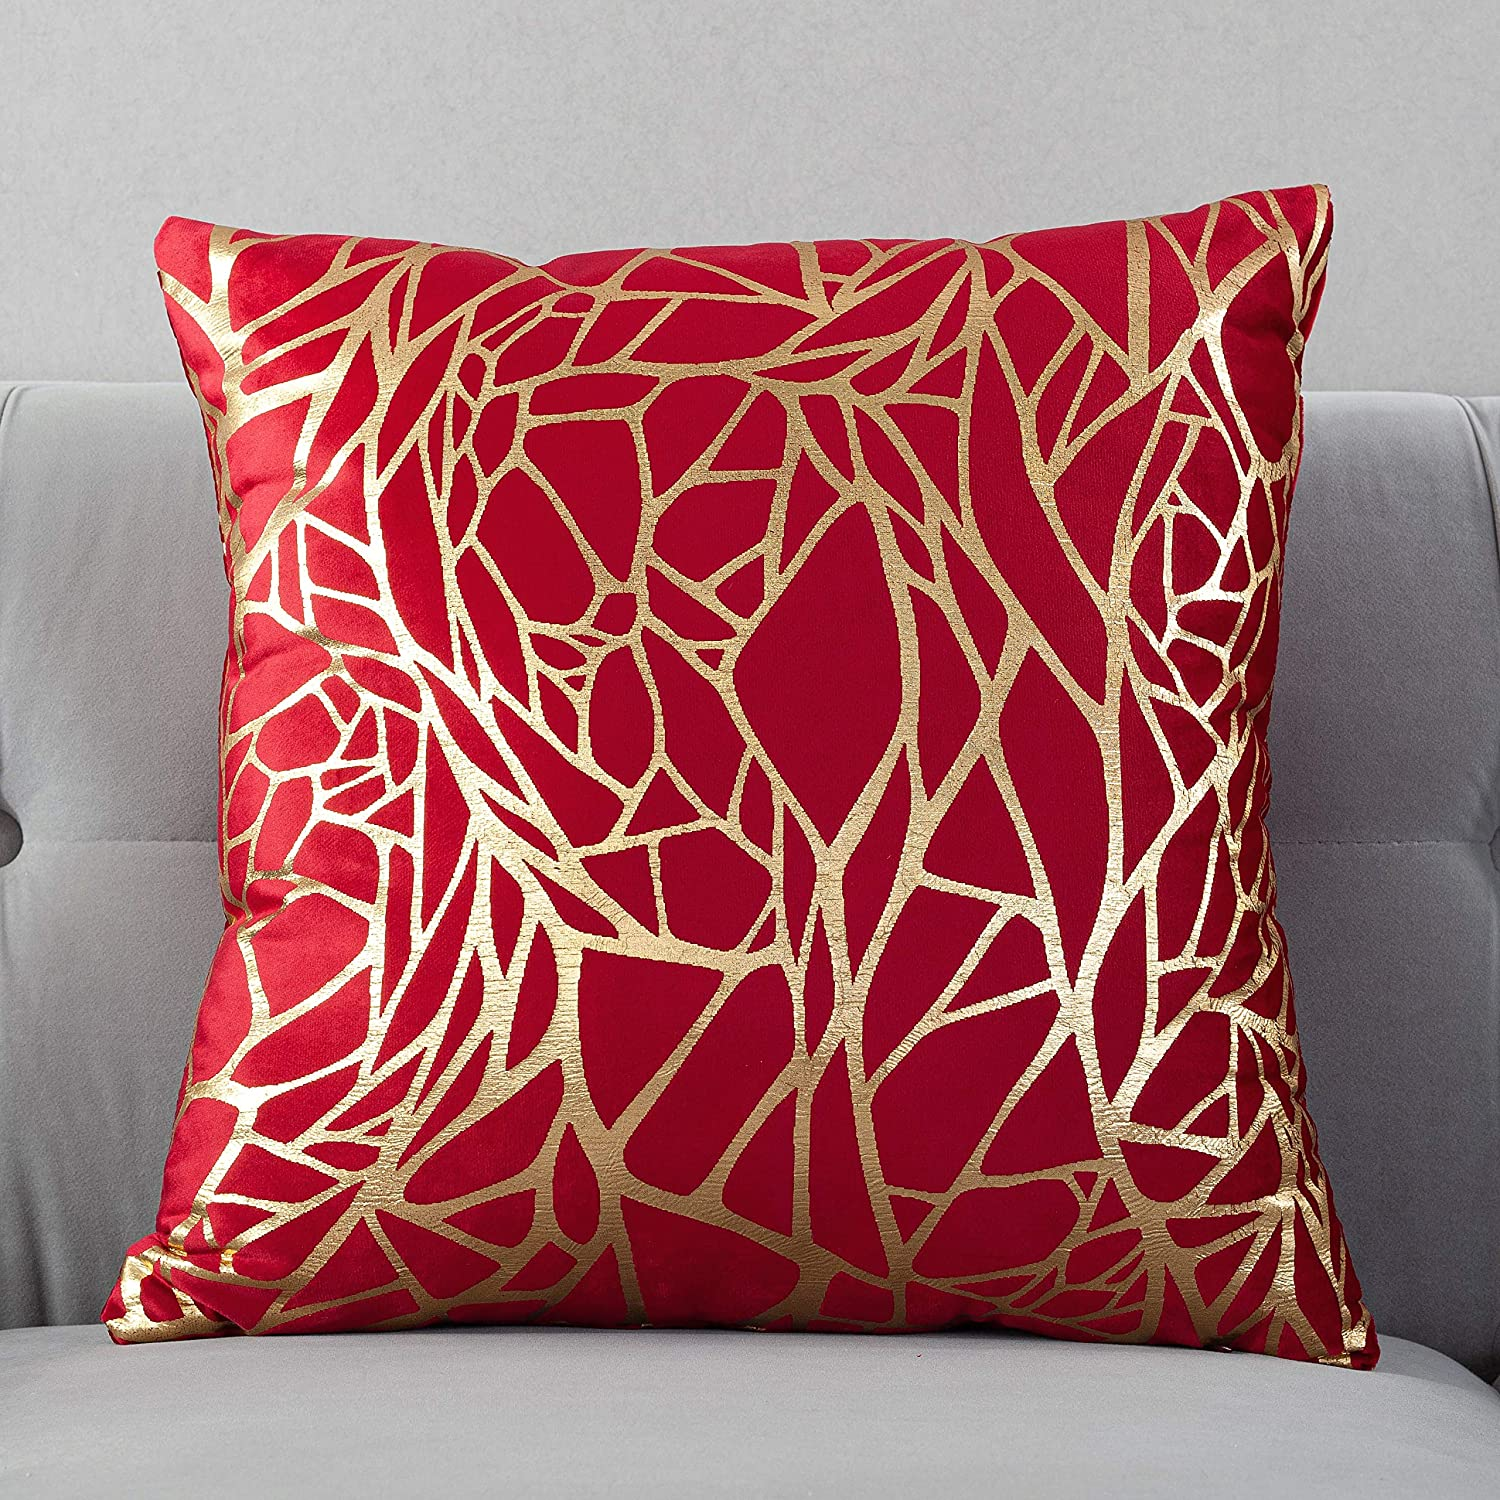 TAOSON Pack of 2,Irregular Abstract Lines Geometric Bronzing Printed Cozy Soft Throw Pillow Cases Cushion Covers Shells for Sofa Couch Bed Home Decoration 18 x 18 Inches, Red and Gold